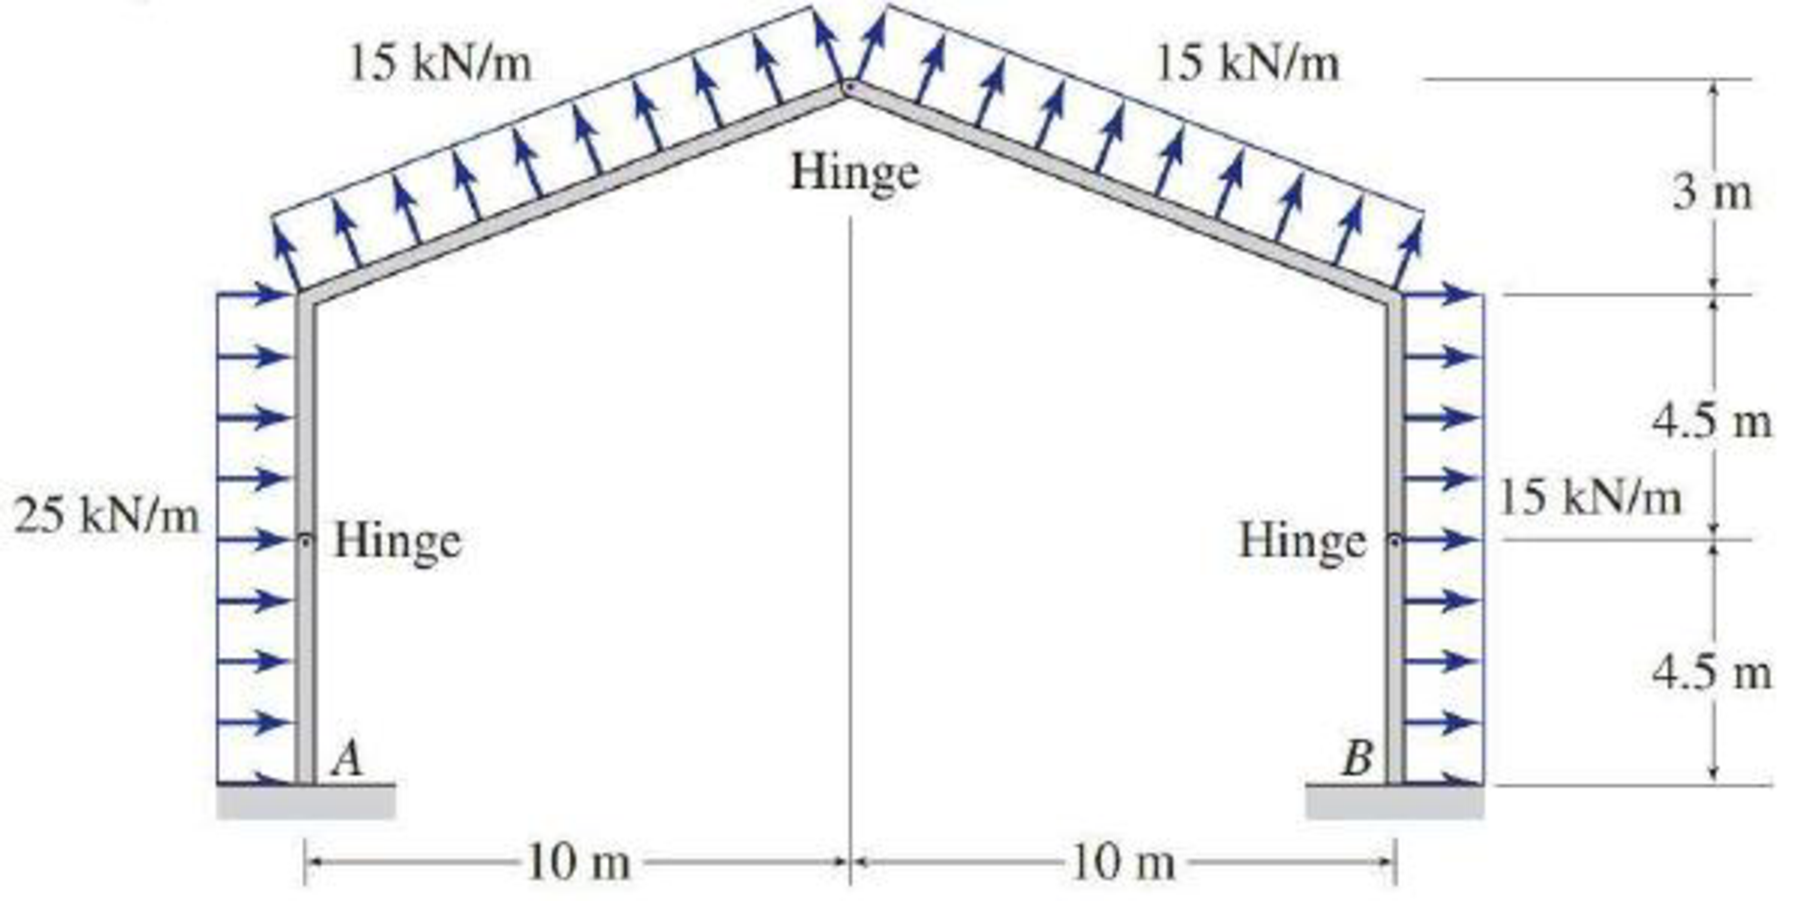 Chapter 3, Problem 42P, 3.16 through 3.42 Determine the reactions at the supports for the structures shown. FIG. P3.42